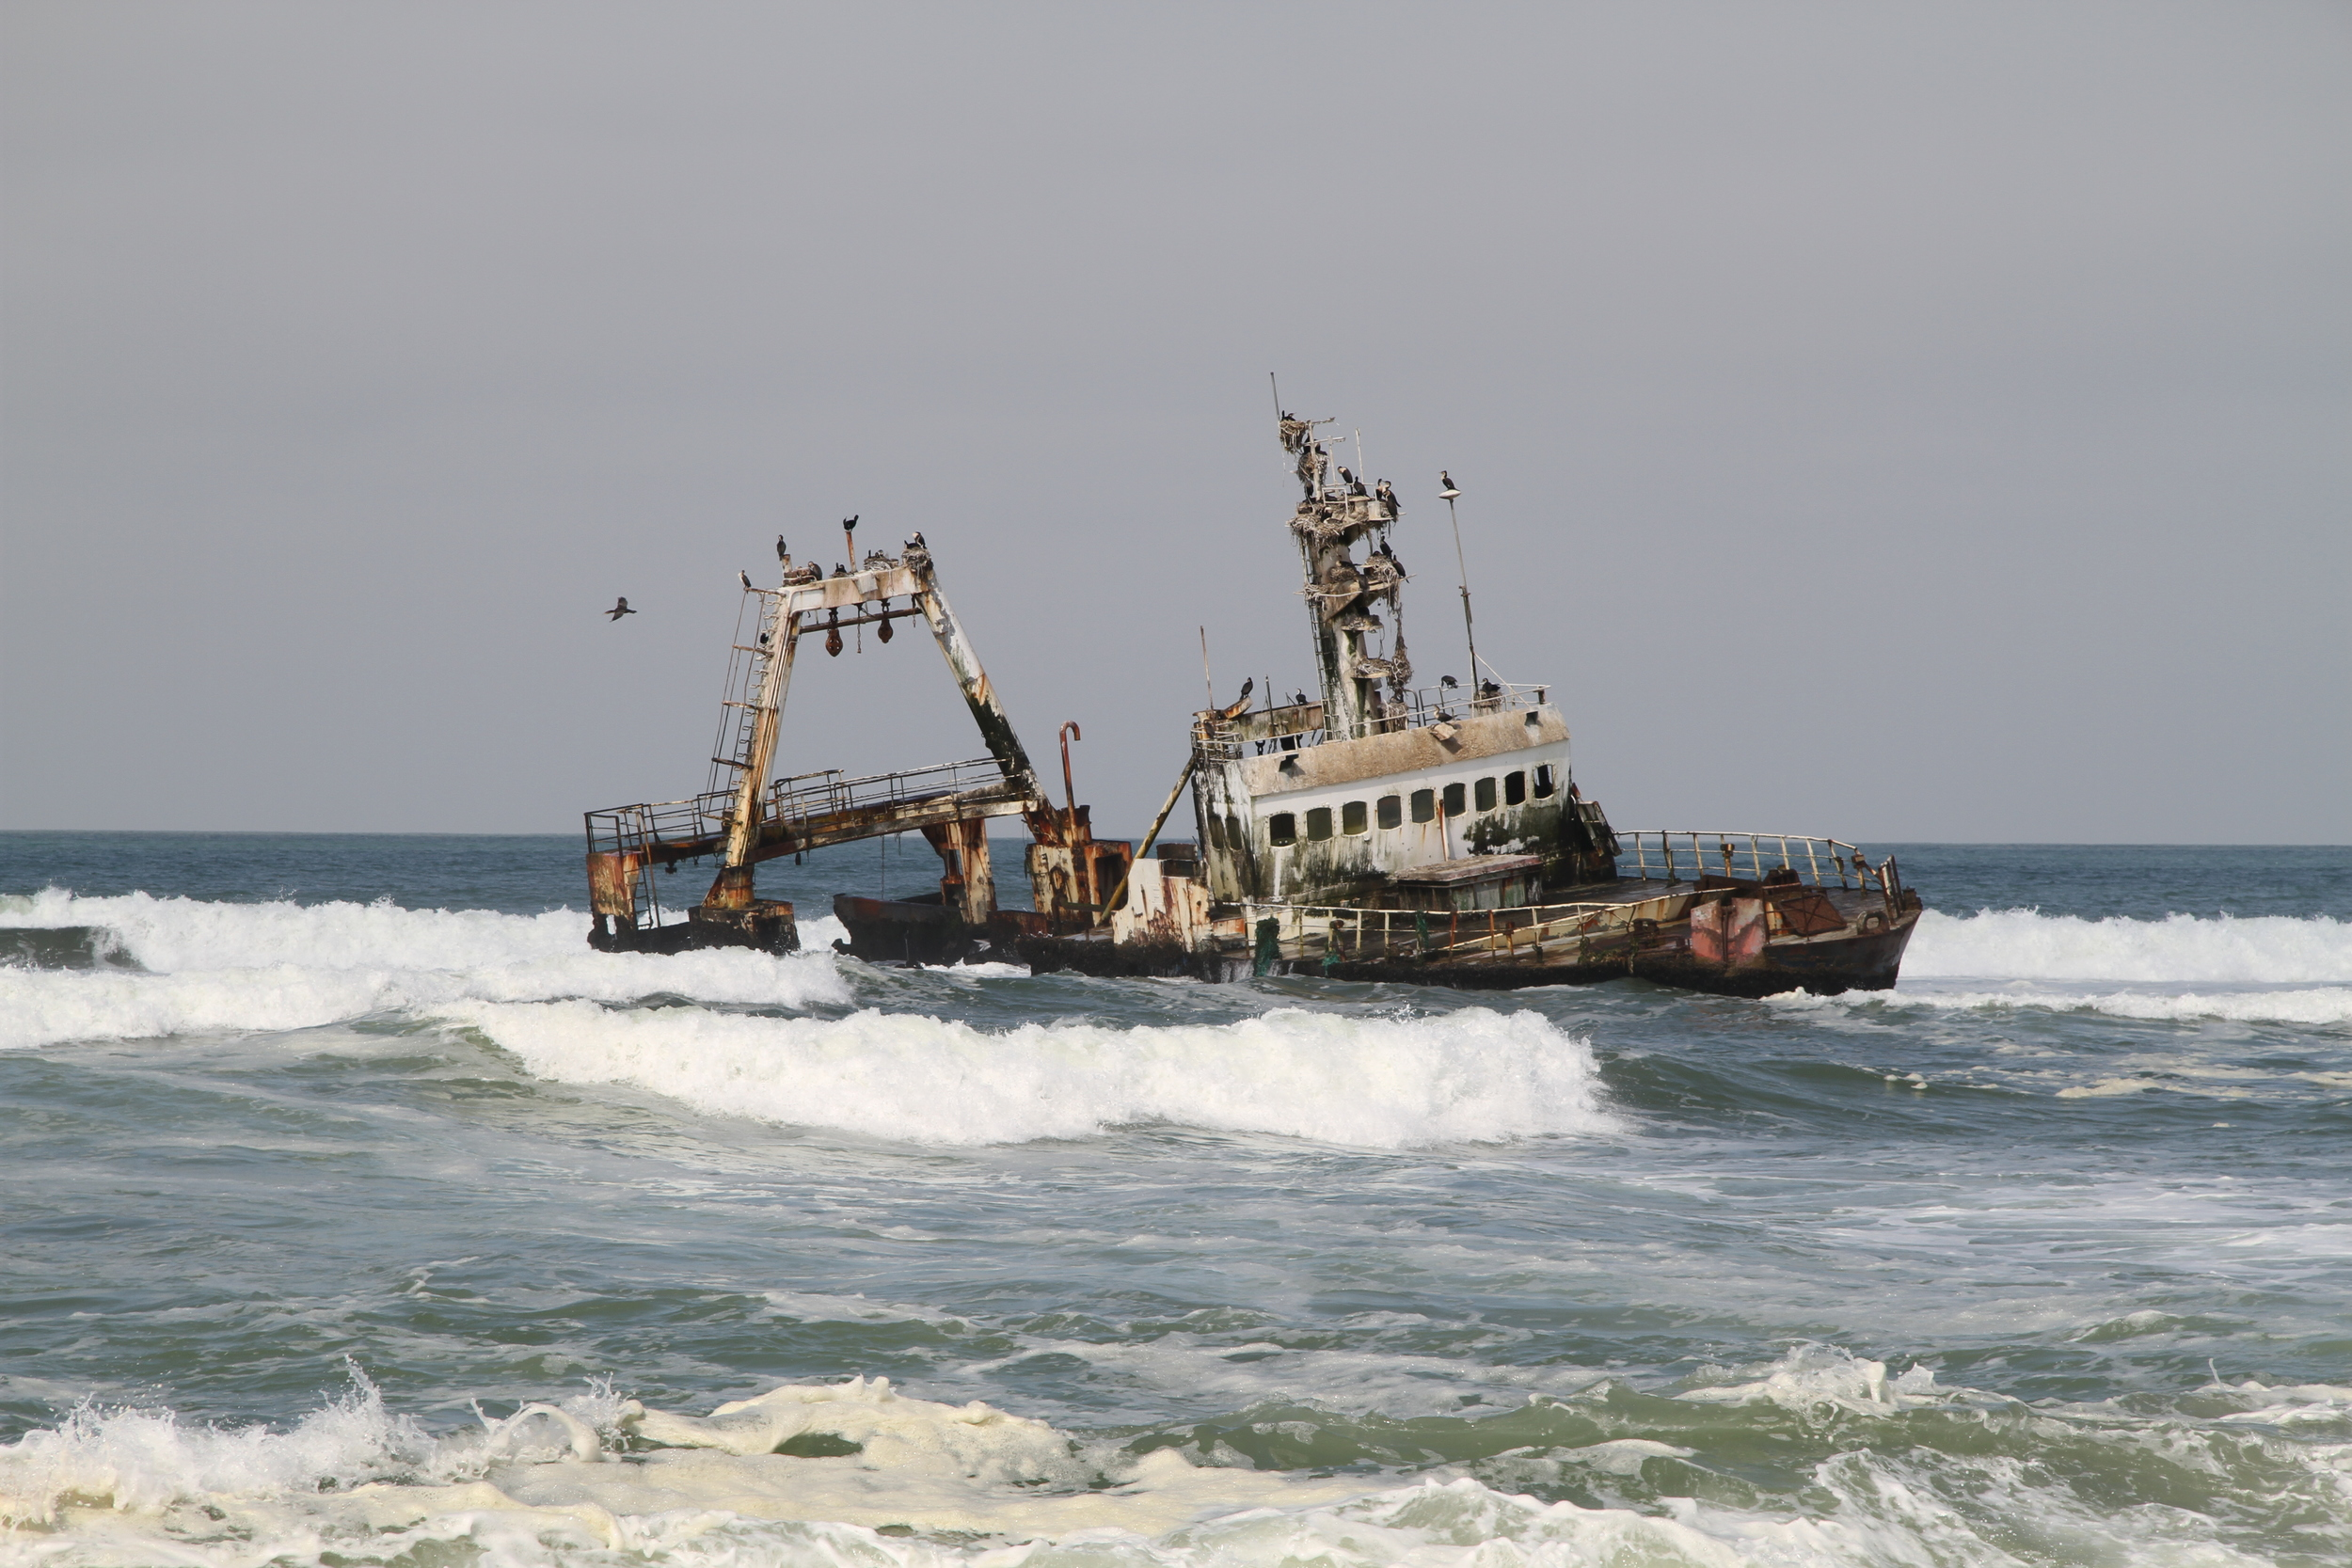 A recent shipwreck slowly rusts along the Skeleton Coast in Namibia, one of the world's most treacherous shorelines. (2015)